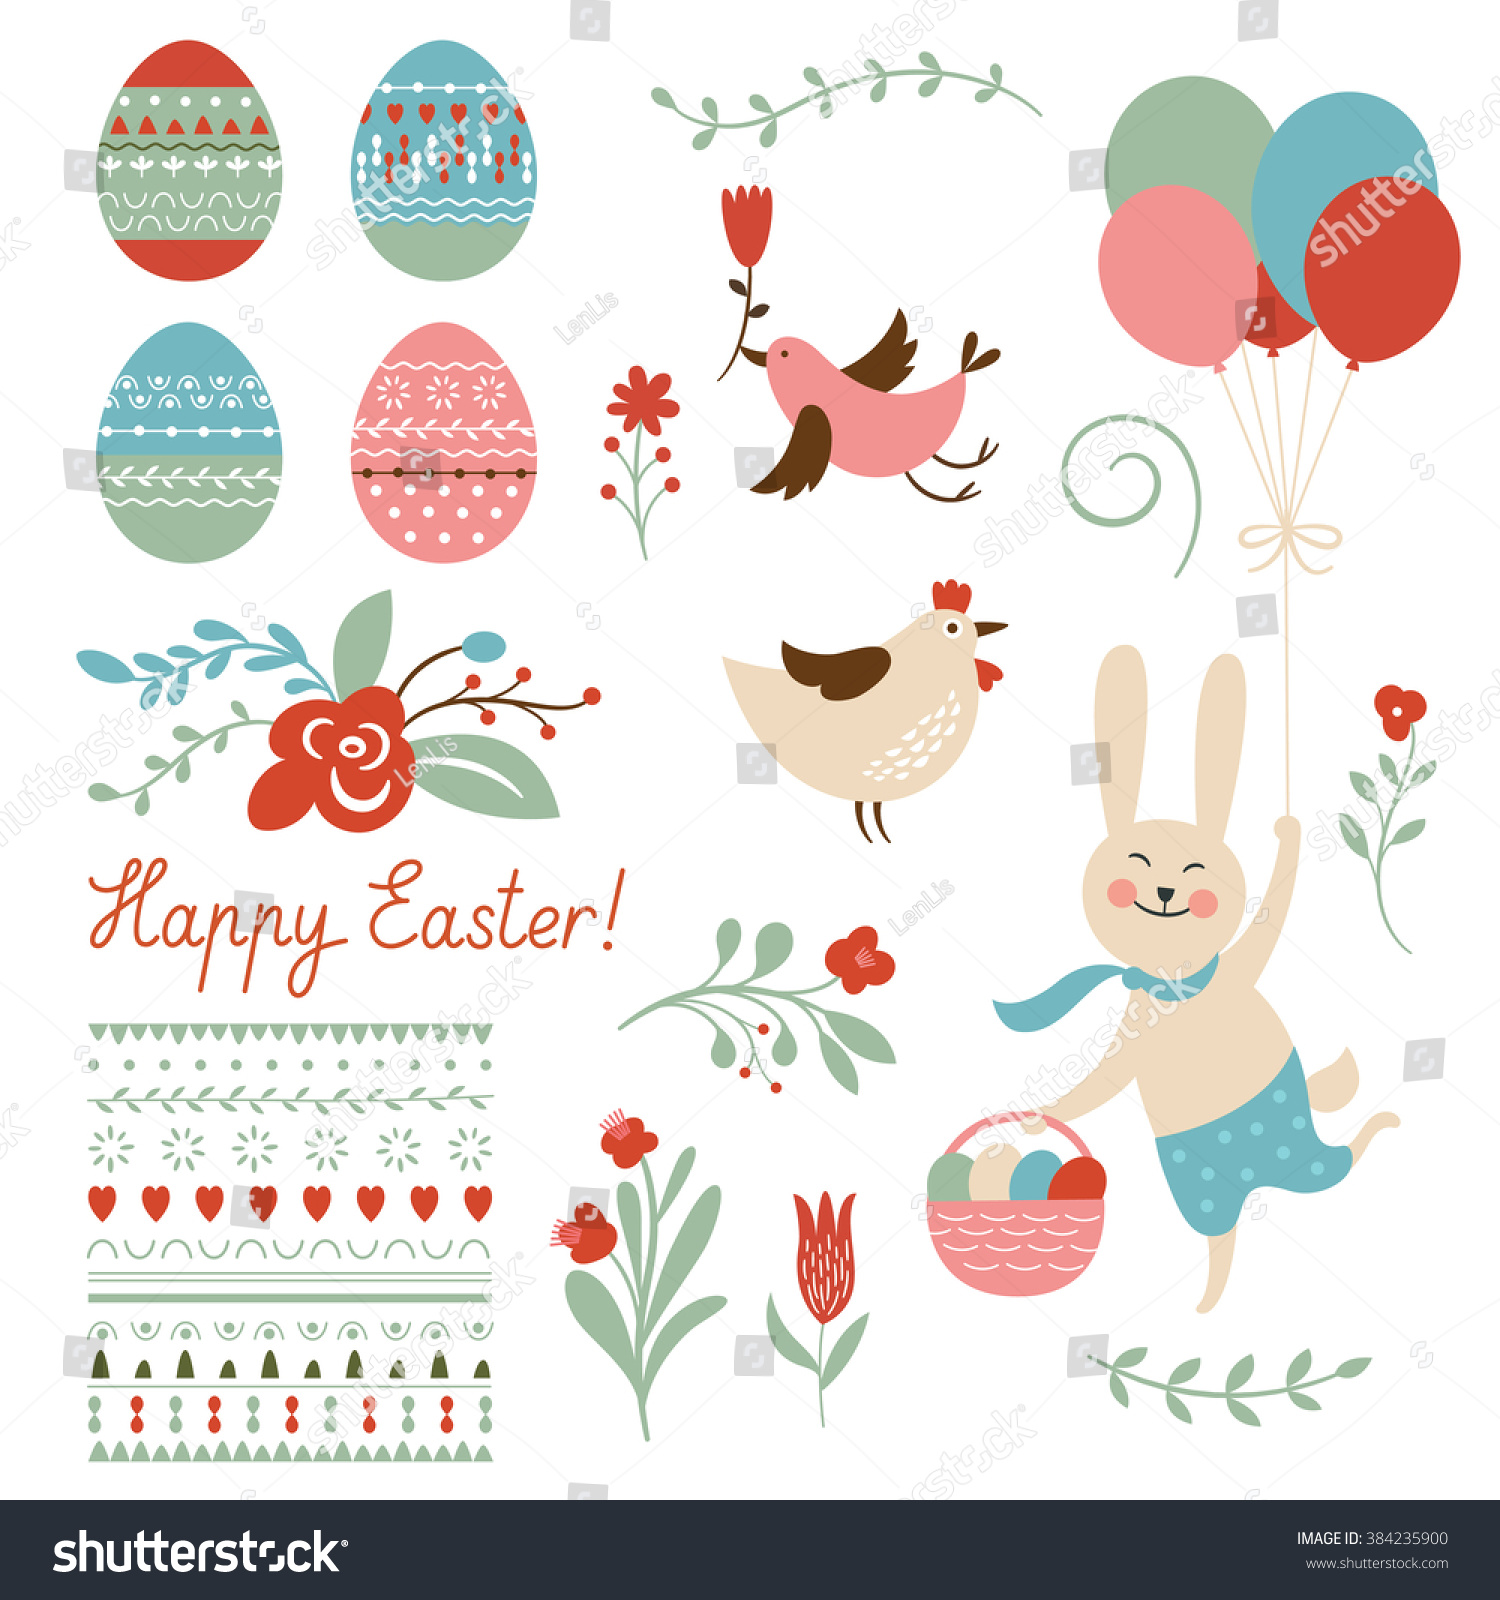 Happy Easter Graphic Elements Stock Vector 384235900 ...